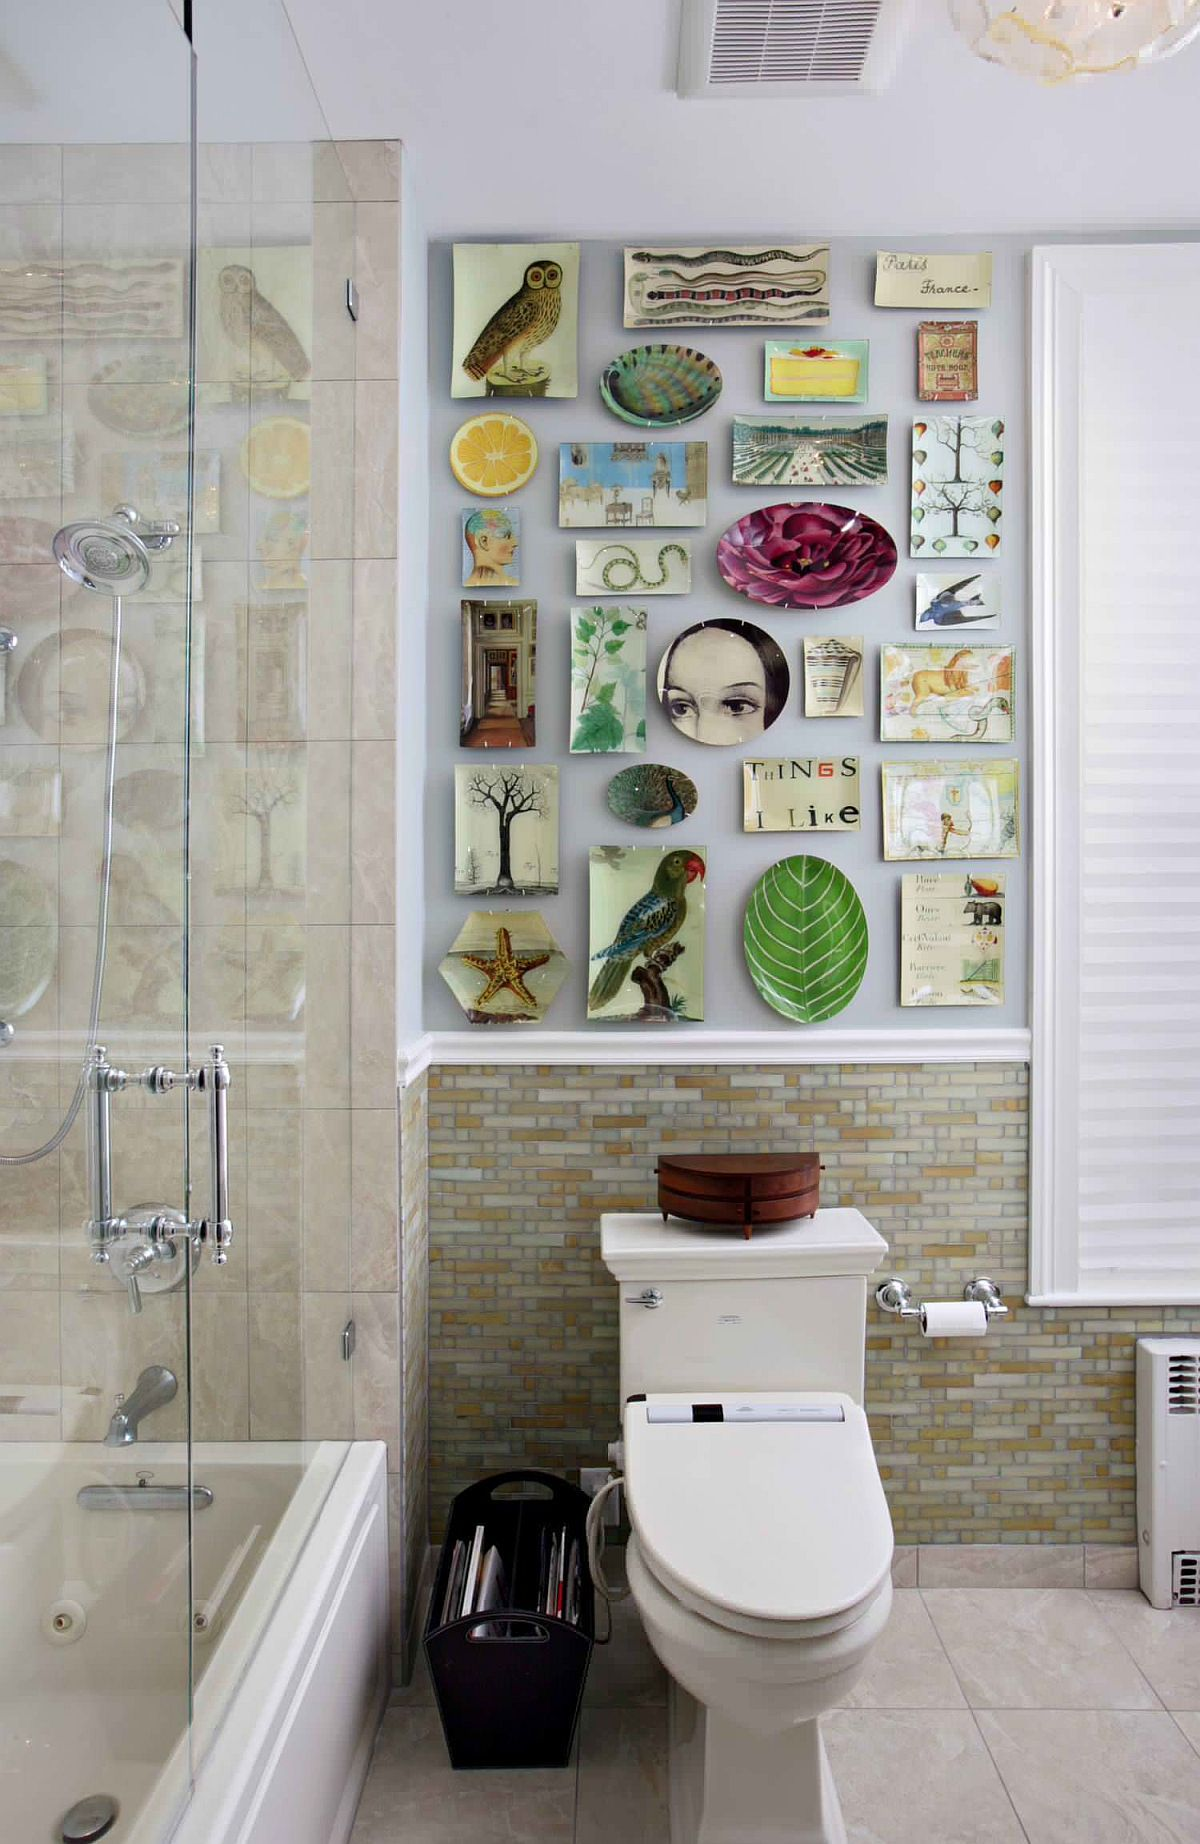 Decorating Your Bathroom Walls 15 Wall Art Ideas That Wow In 2020 Bathroom Design Small Plates On Wall Eclectic Gallery Wall